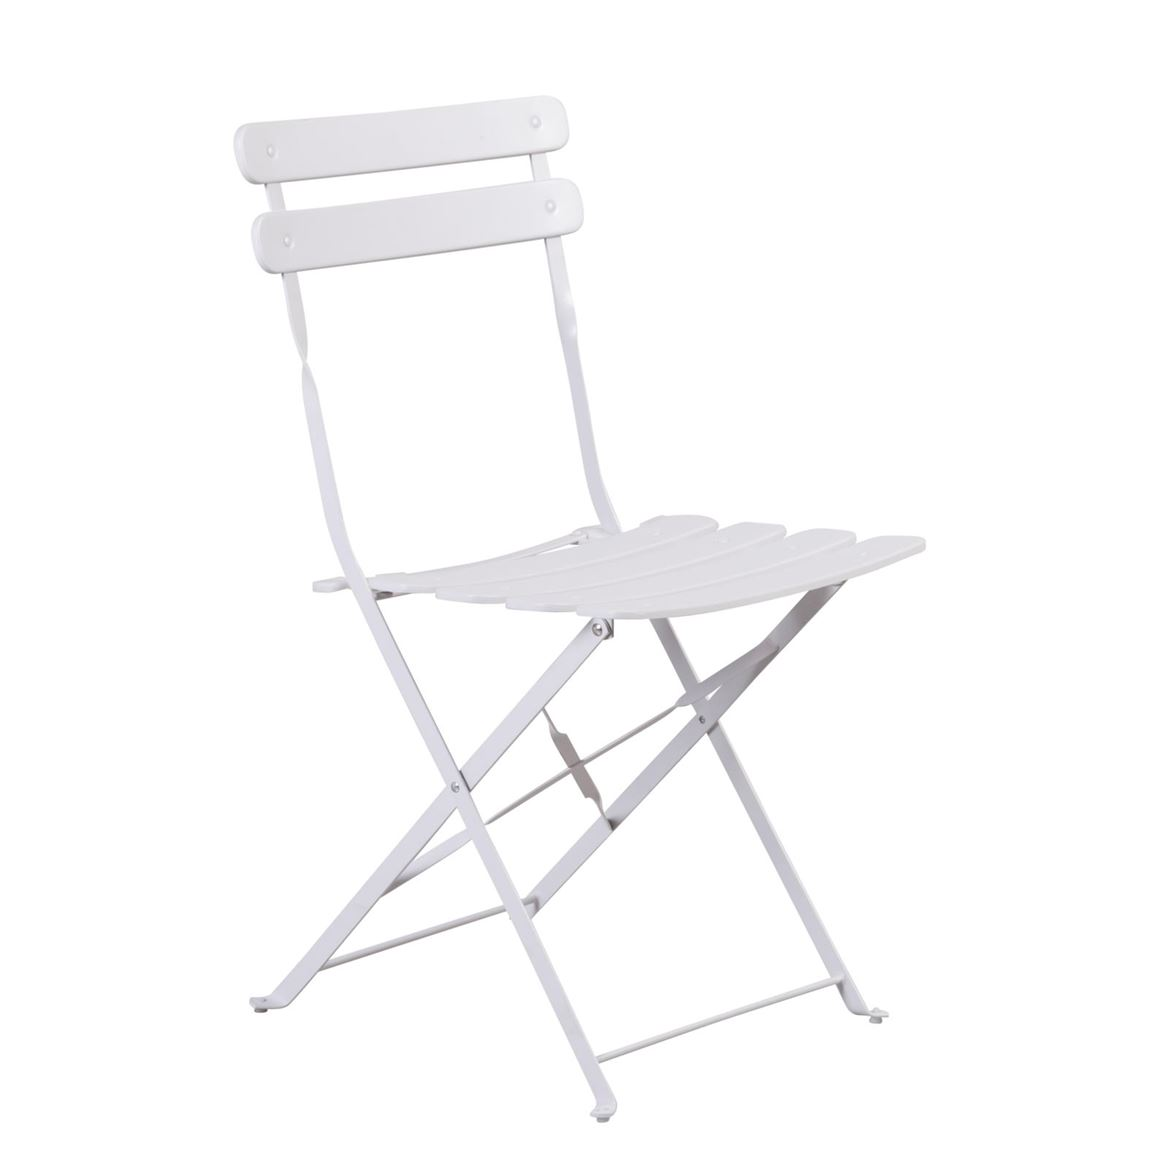 X Imperial Cm 46 Blanc H Chaise 82 P Larg42 Bistro 5 IfvygY6m7b